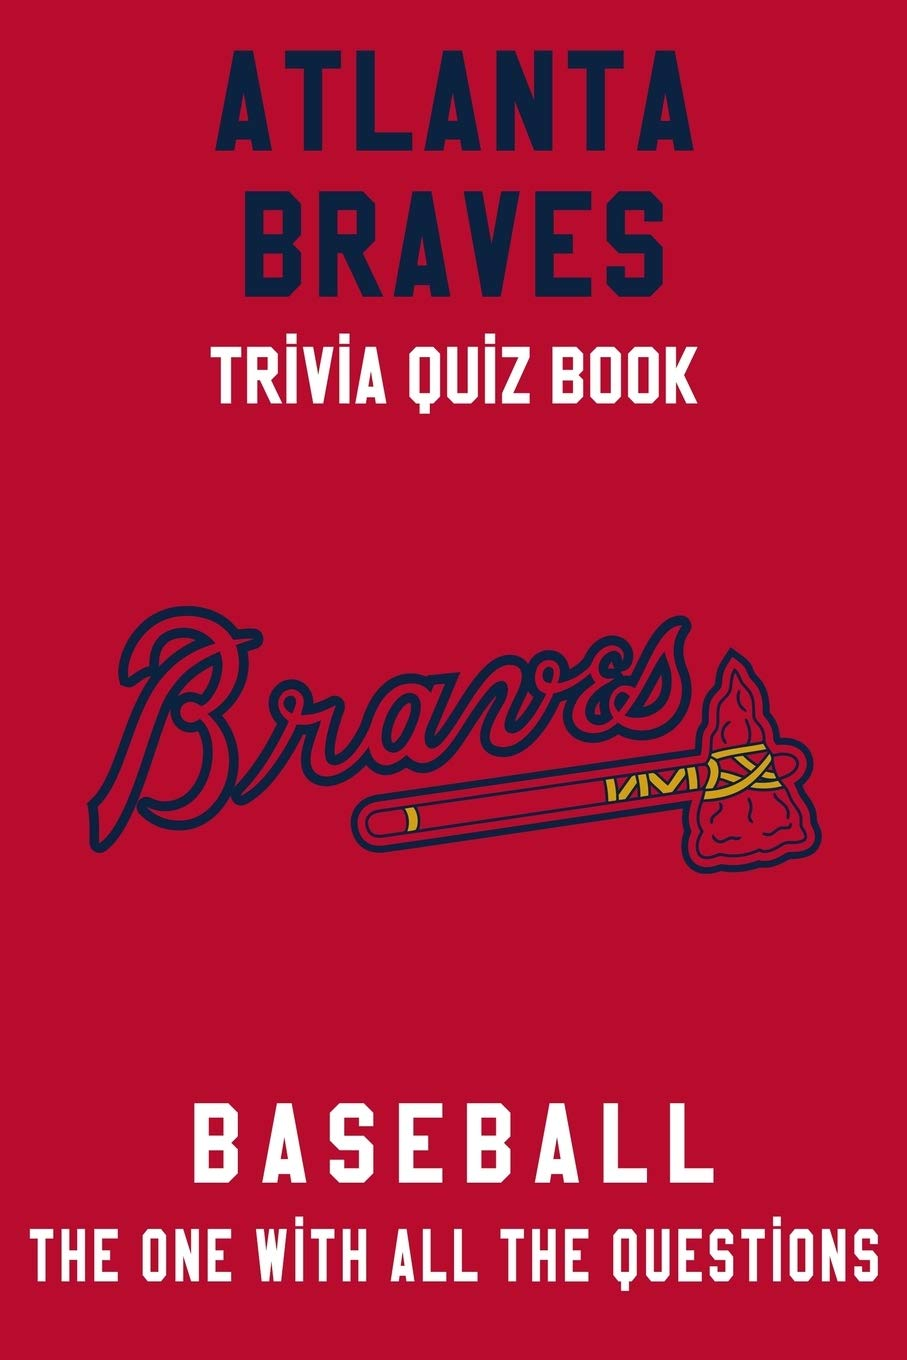 Atlanta Braves Trivia Quiz Book Baseball The One With All The Questions Mlb Baseball Fan Gift For Fan Of Atlanta Braves Amazon Co Uk Fields Jamie Books